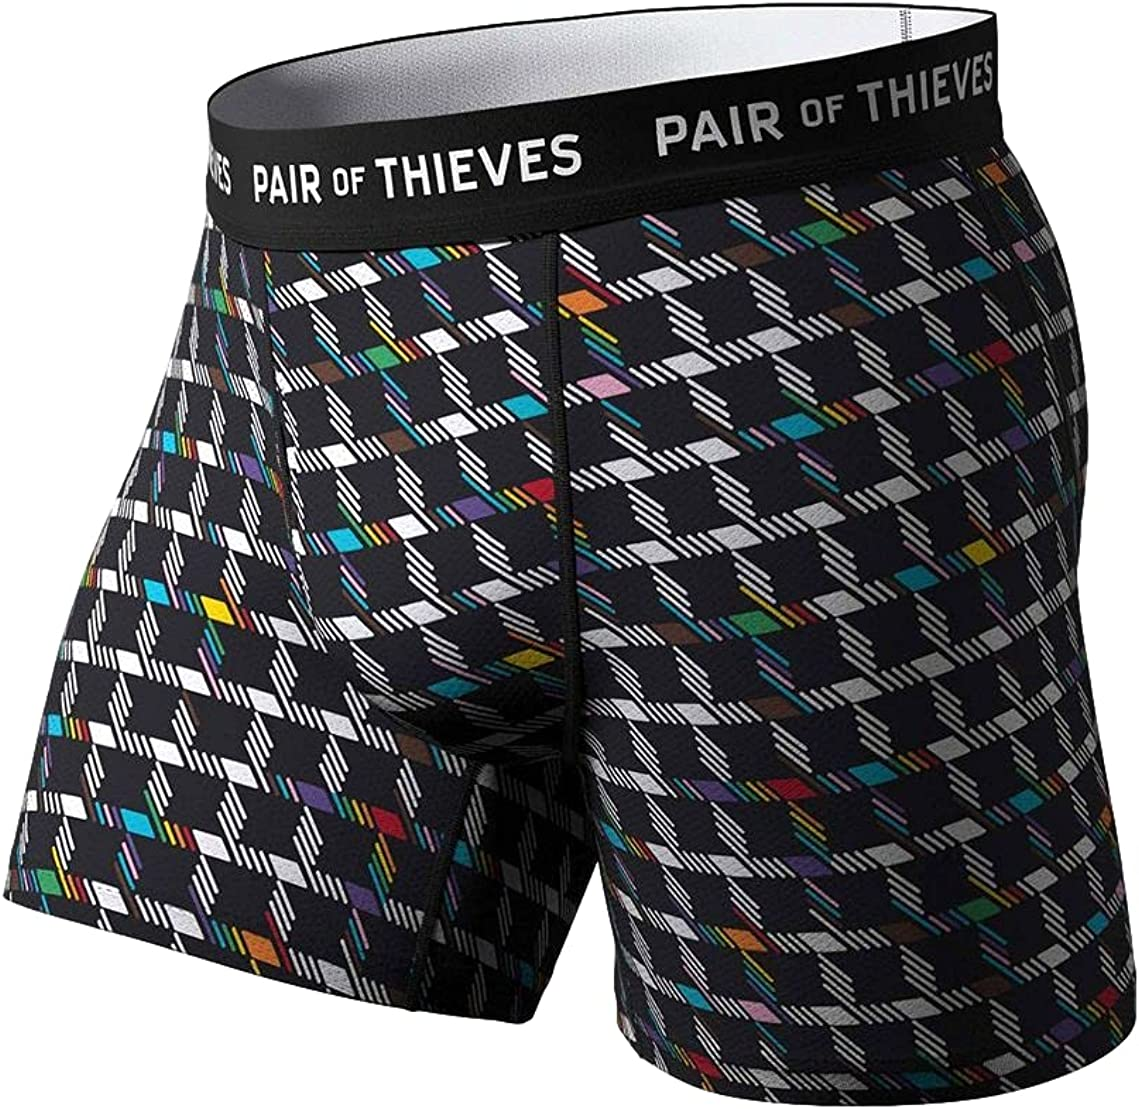 Pair of Thieves Men's Pride Knit Boxer Briefs - Proceeds Support the Trevor Project